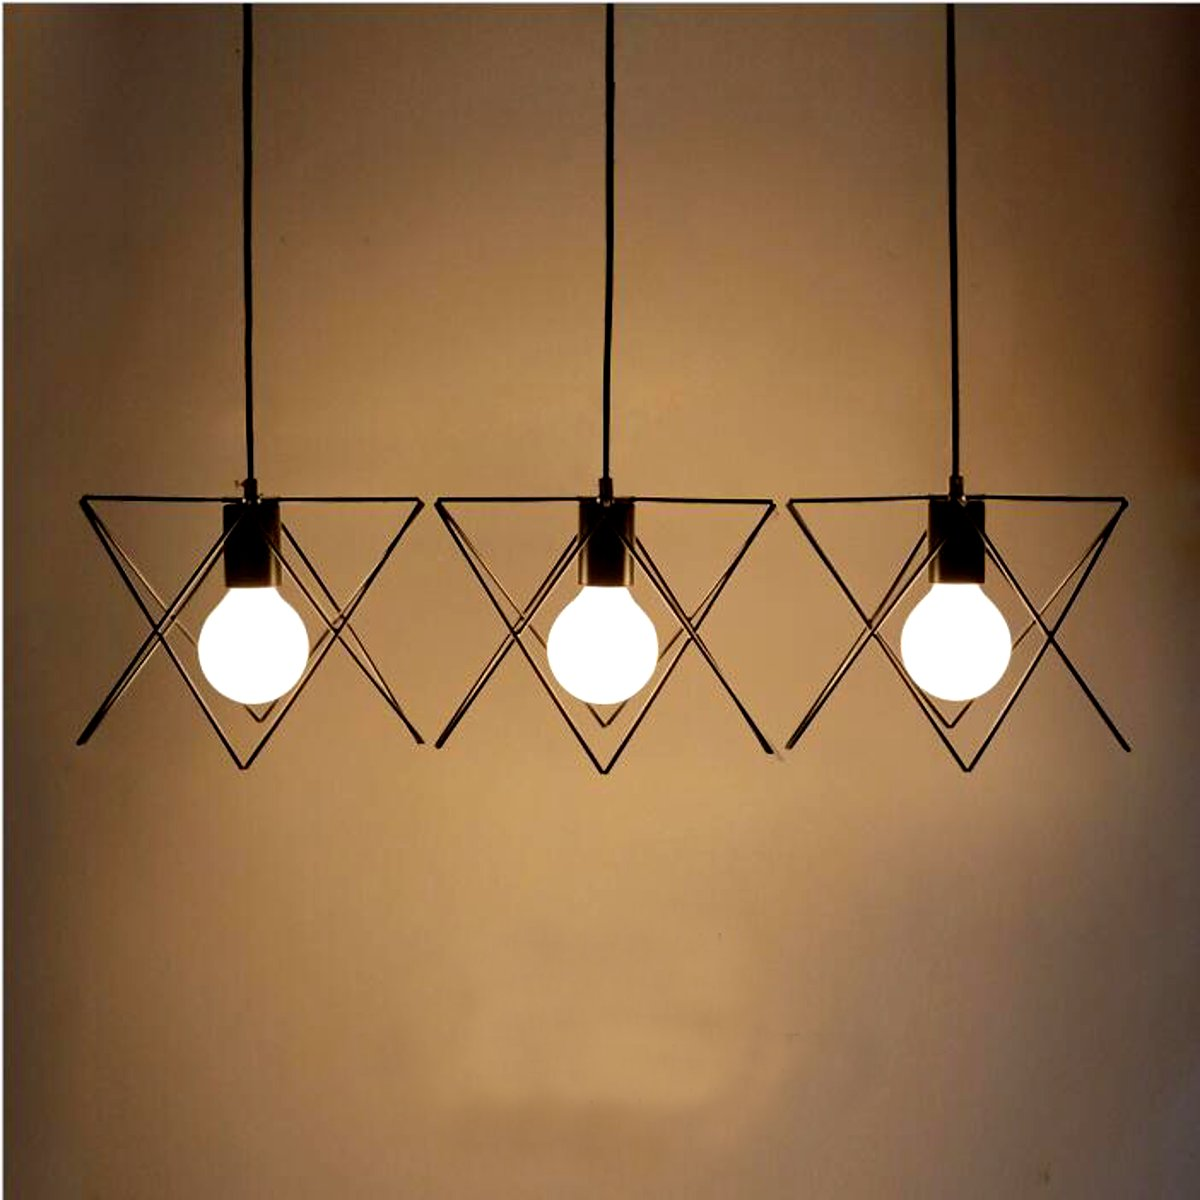 3 in 1 metal vintage ceiling light pendant lamp cage for Metal hanging lights